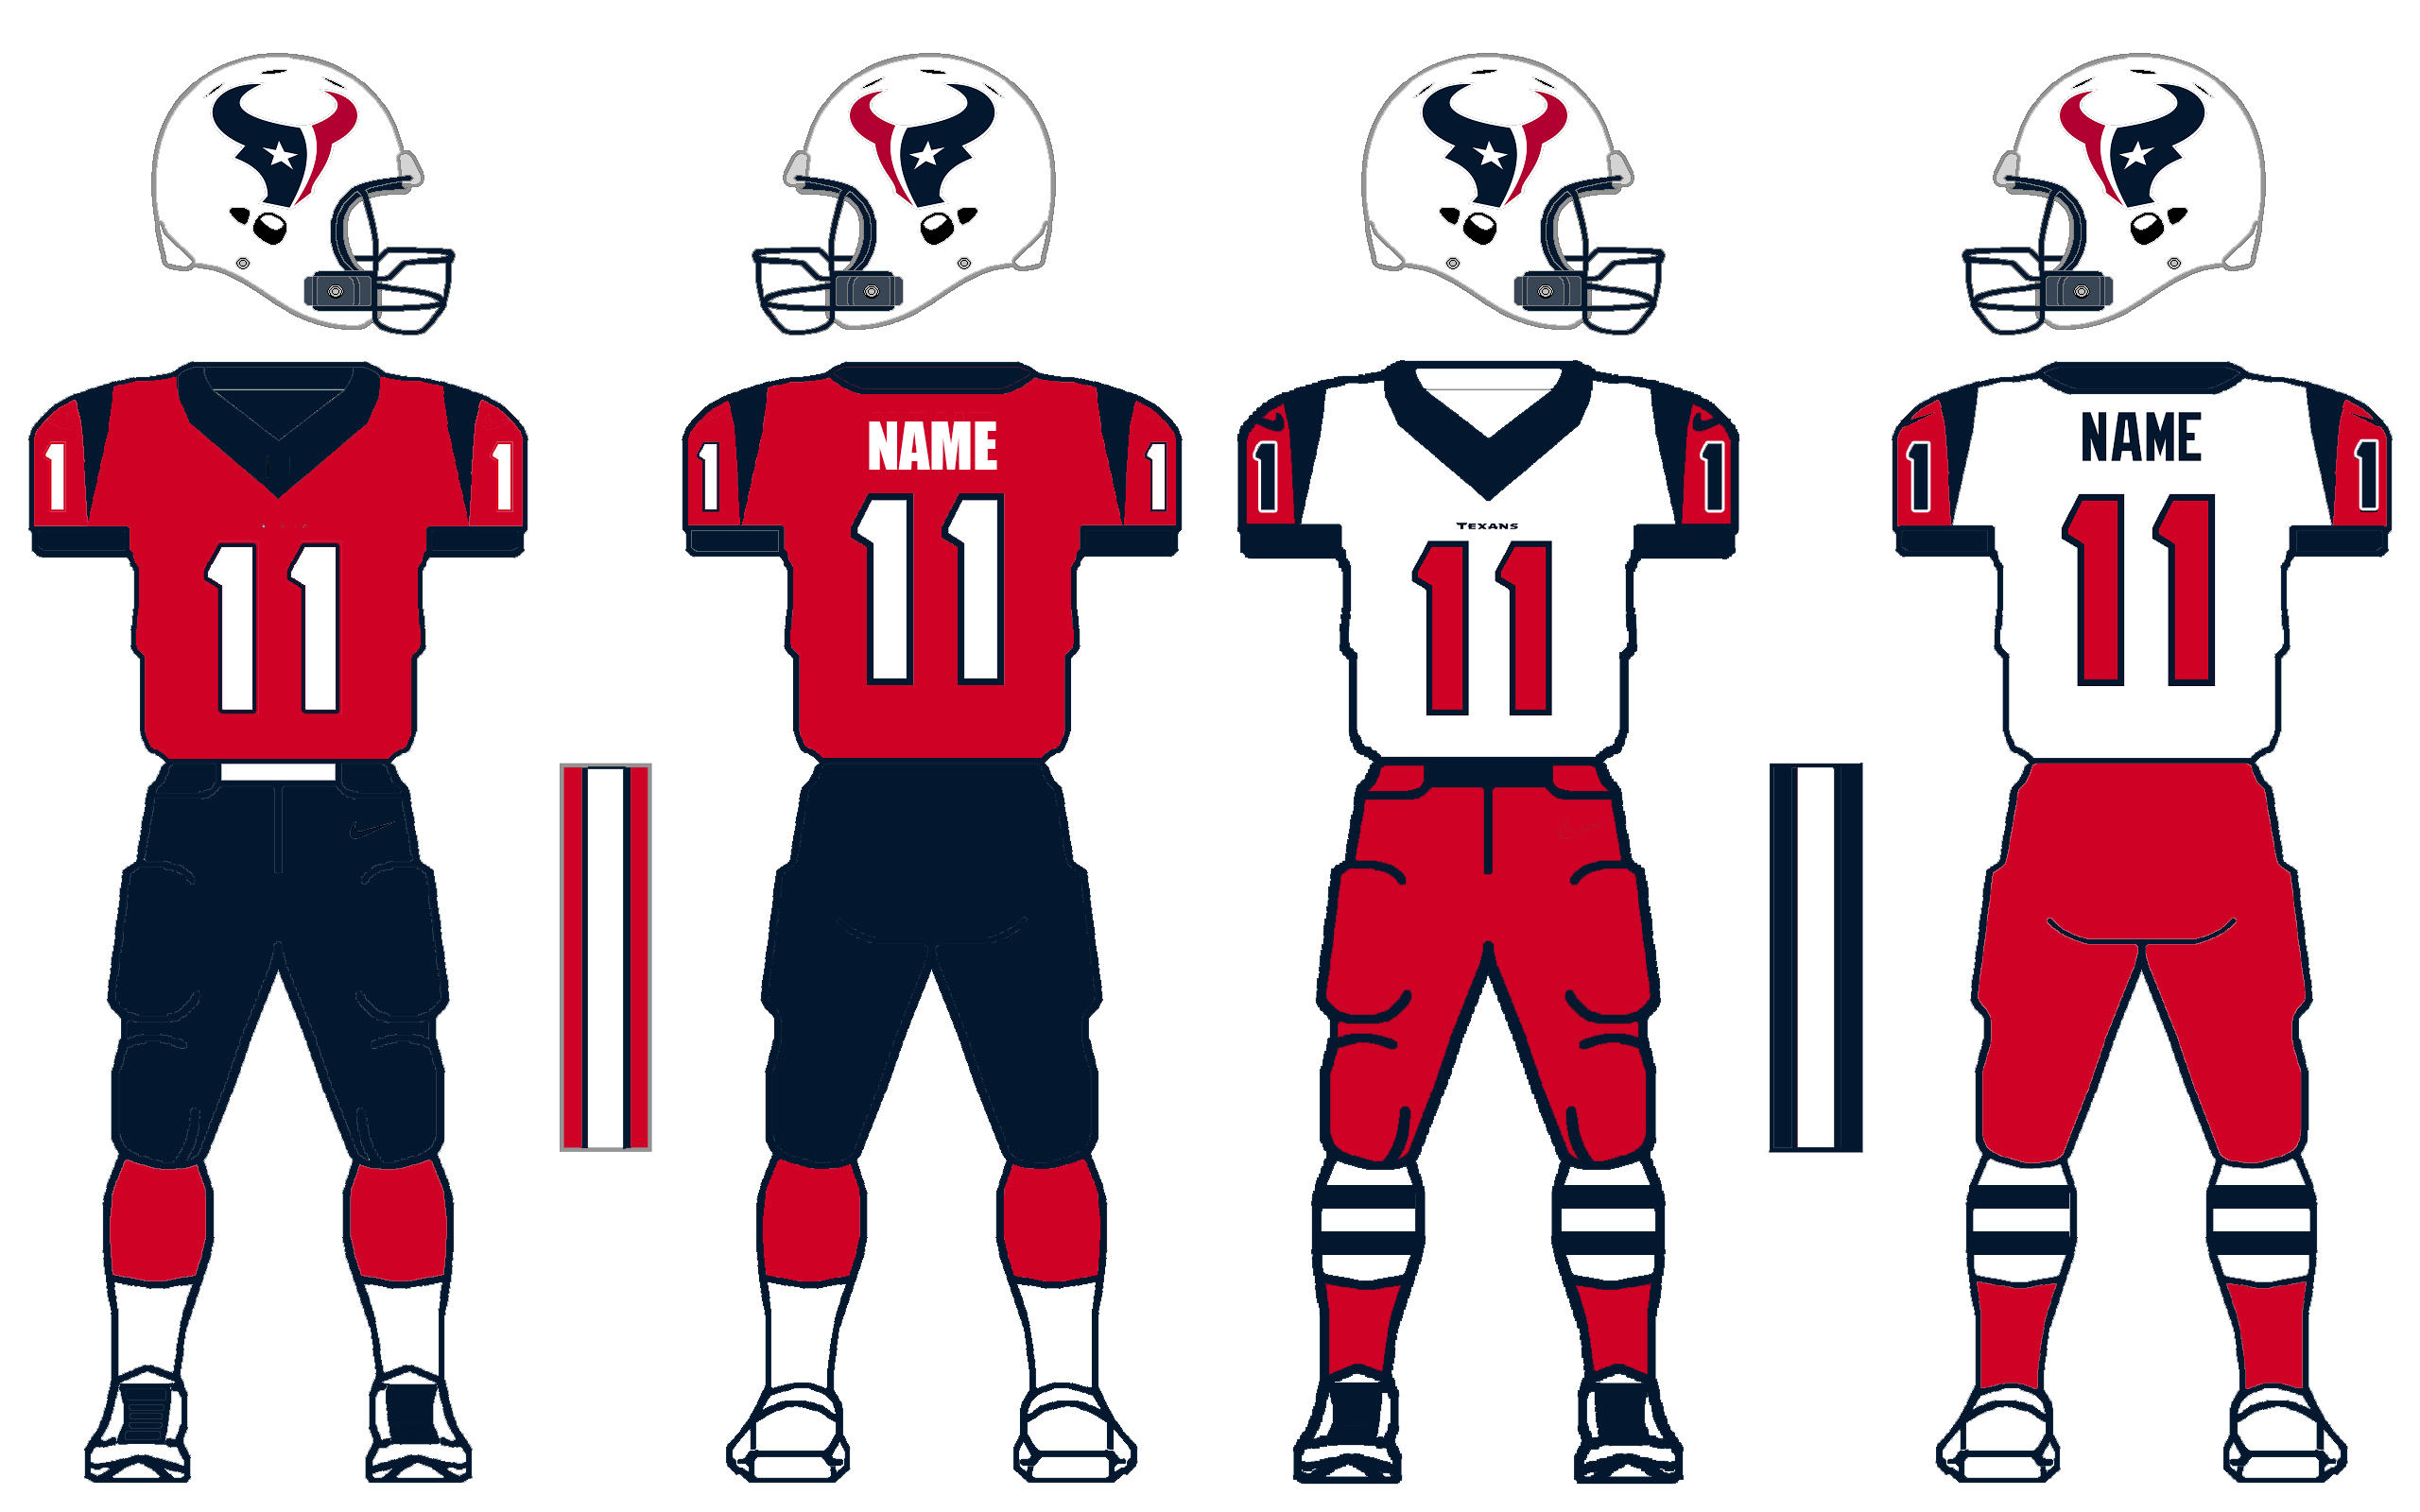 tEXANS-jERSEYS